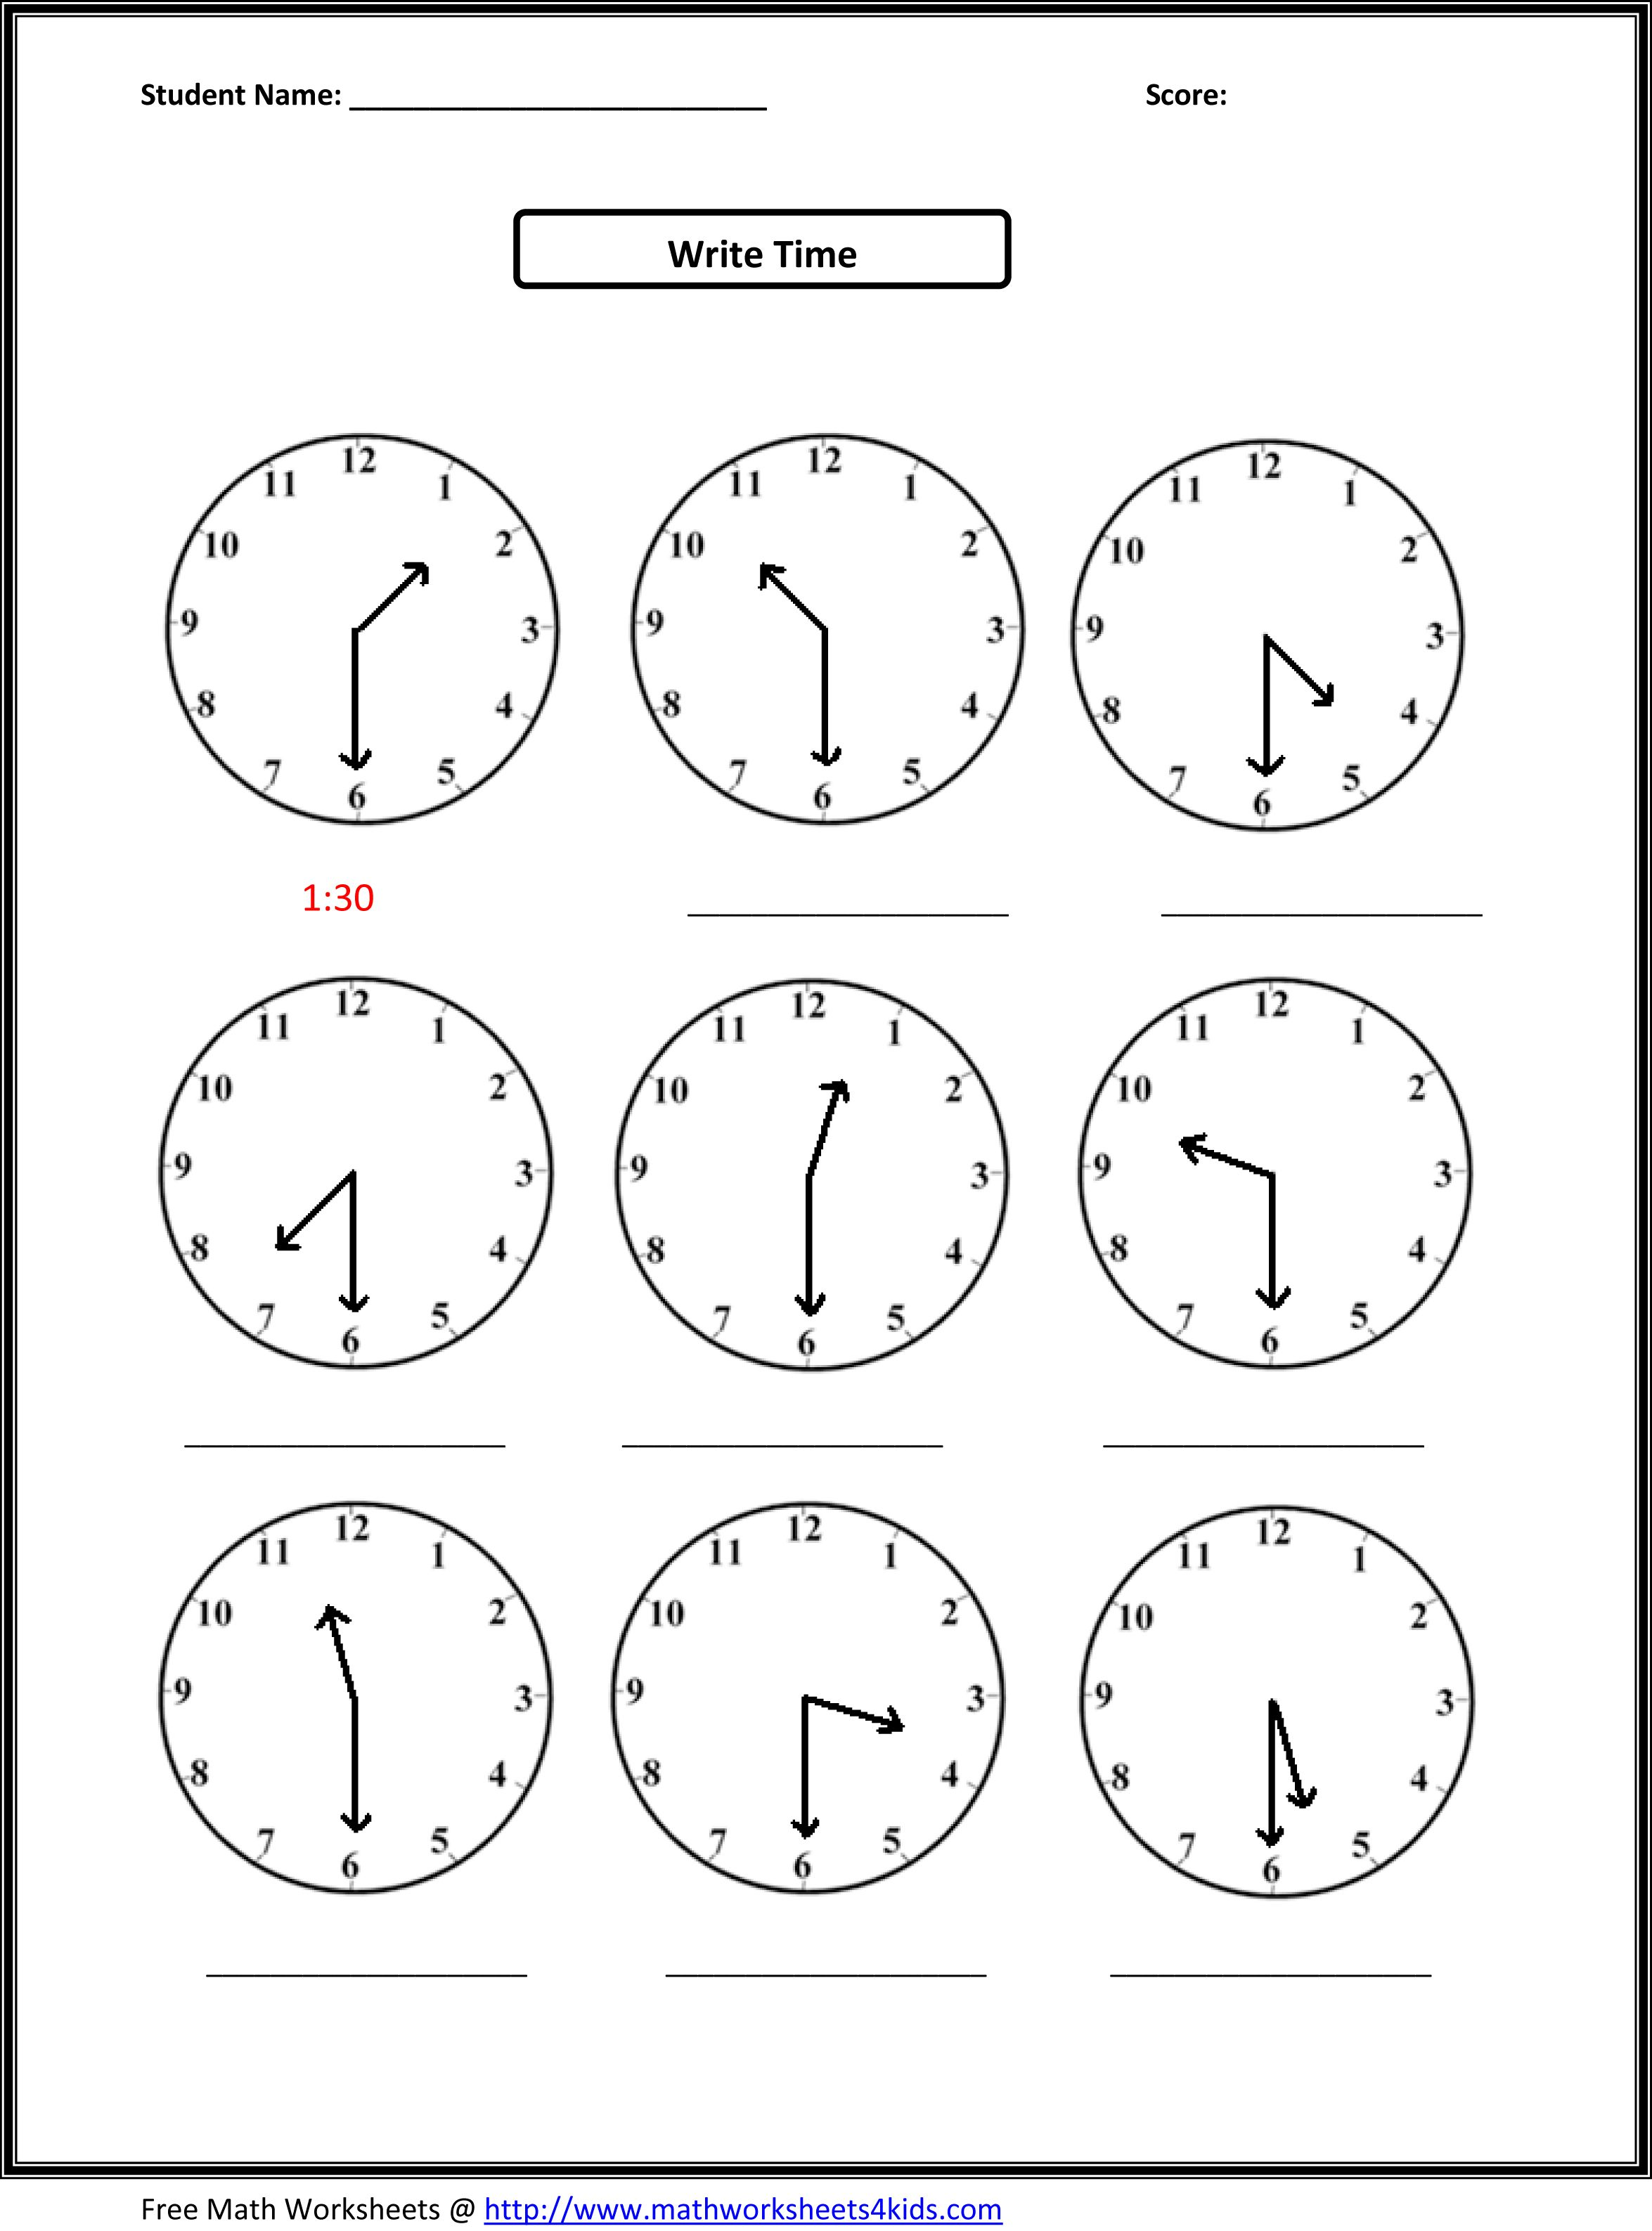 Proatmealus  Unique Worksheet On Time For Grade   Reocurent With Goodlooking Free Printable Telling Time Worksheets Nd Grade  Reocurent With Appealing Consonant Blend Worksheet Also Free Worksheets St Grade In Addition Comparing Quantities Worksheets And Making Line Graphs Worksheet As Well As Point Of View Worksheets For Rd Grade Additionally Third Grade Math Worksheets Printable From Reocurentcom With Proatmealus  Goodlooking Worksheet On Time For Grade   Reocurent With Appealing Free Printable Telling Time Worksheets Nd Grade  Reocurent And Unique Consonant Blend Worksheet Also Free Worksheets St Grade In Addition Comparing Quantities Worksheets From Reocurentcom